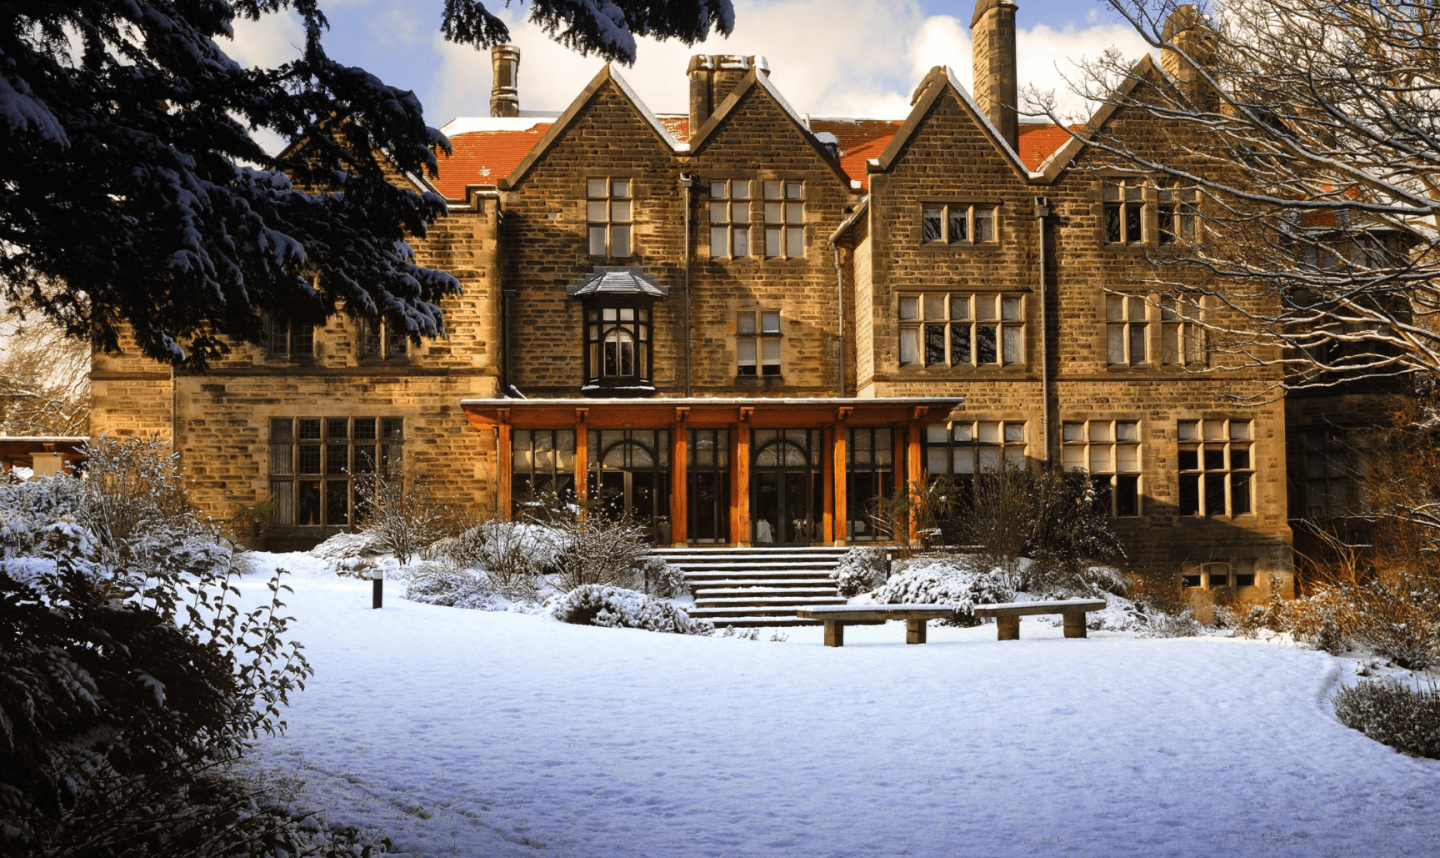 REVIEW: Jesmond Dene House Hotel, Newcastle